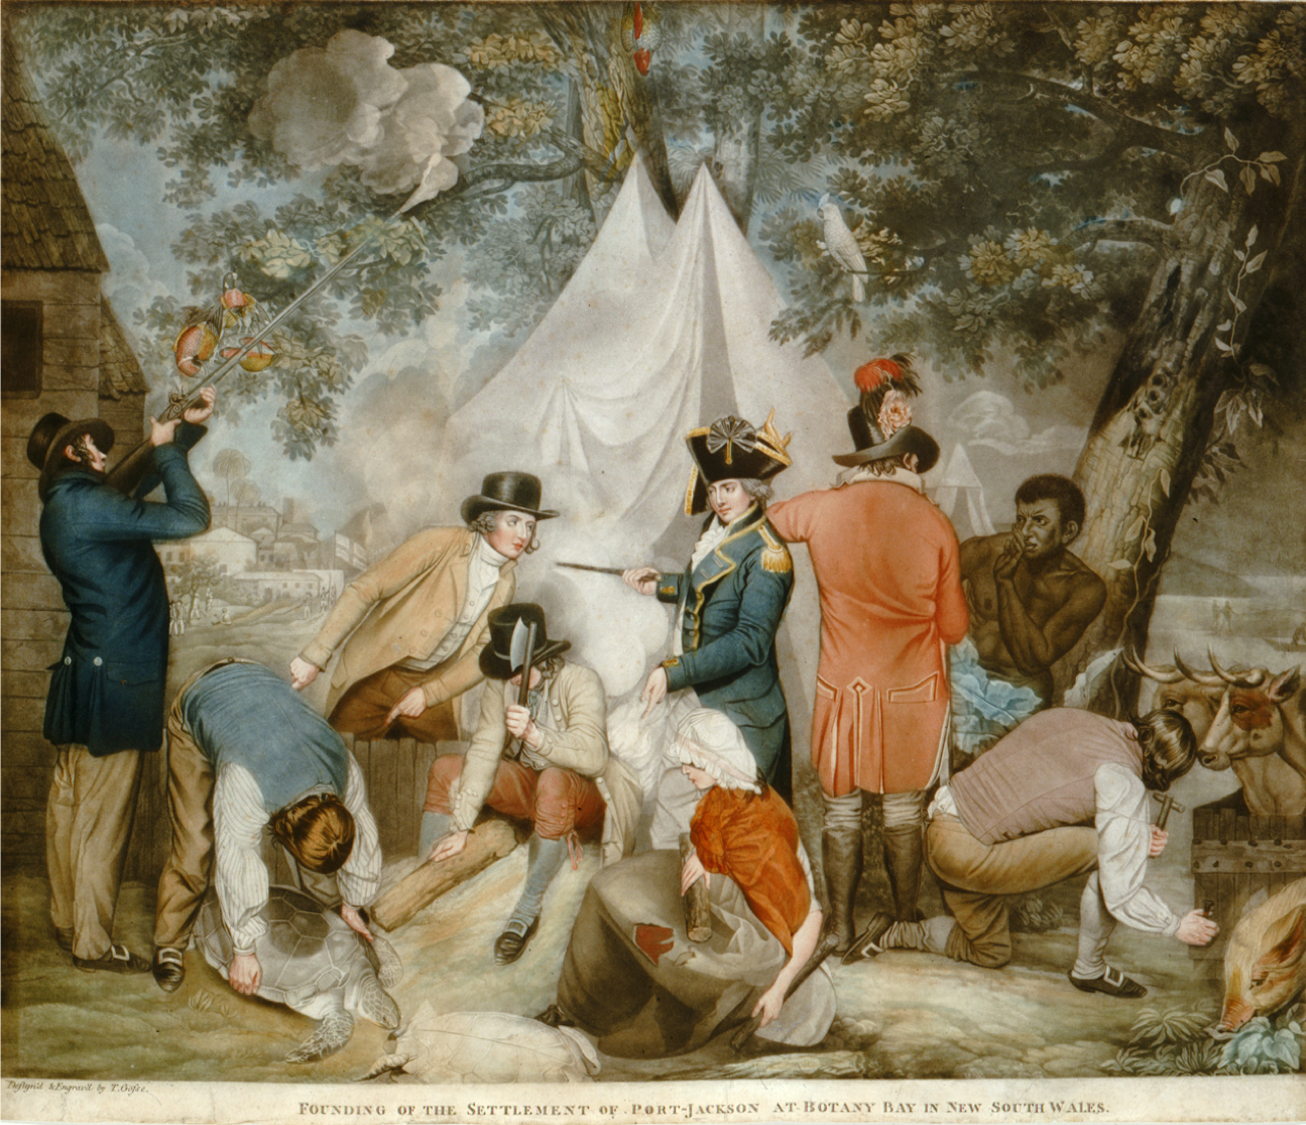 First Fleet, Thomas Gosse, The Founding of the Settlement at Port-Jackson at Botany Bay in New South Wales (1799), St. John's Cemetery Project, St. John's First Fleeters, Old Parramattans